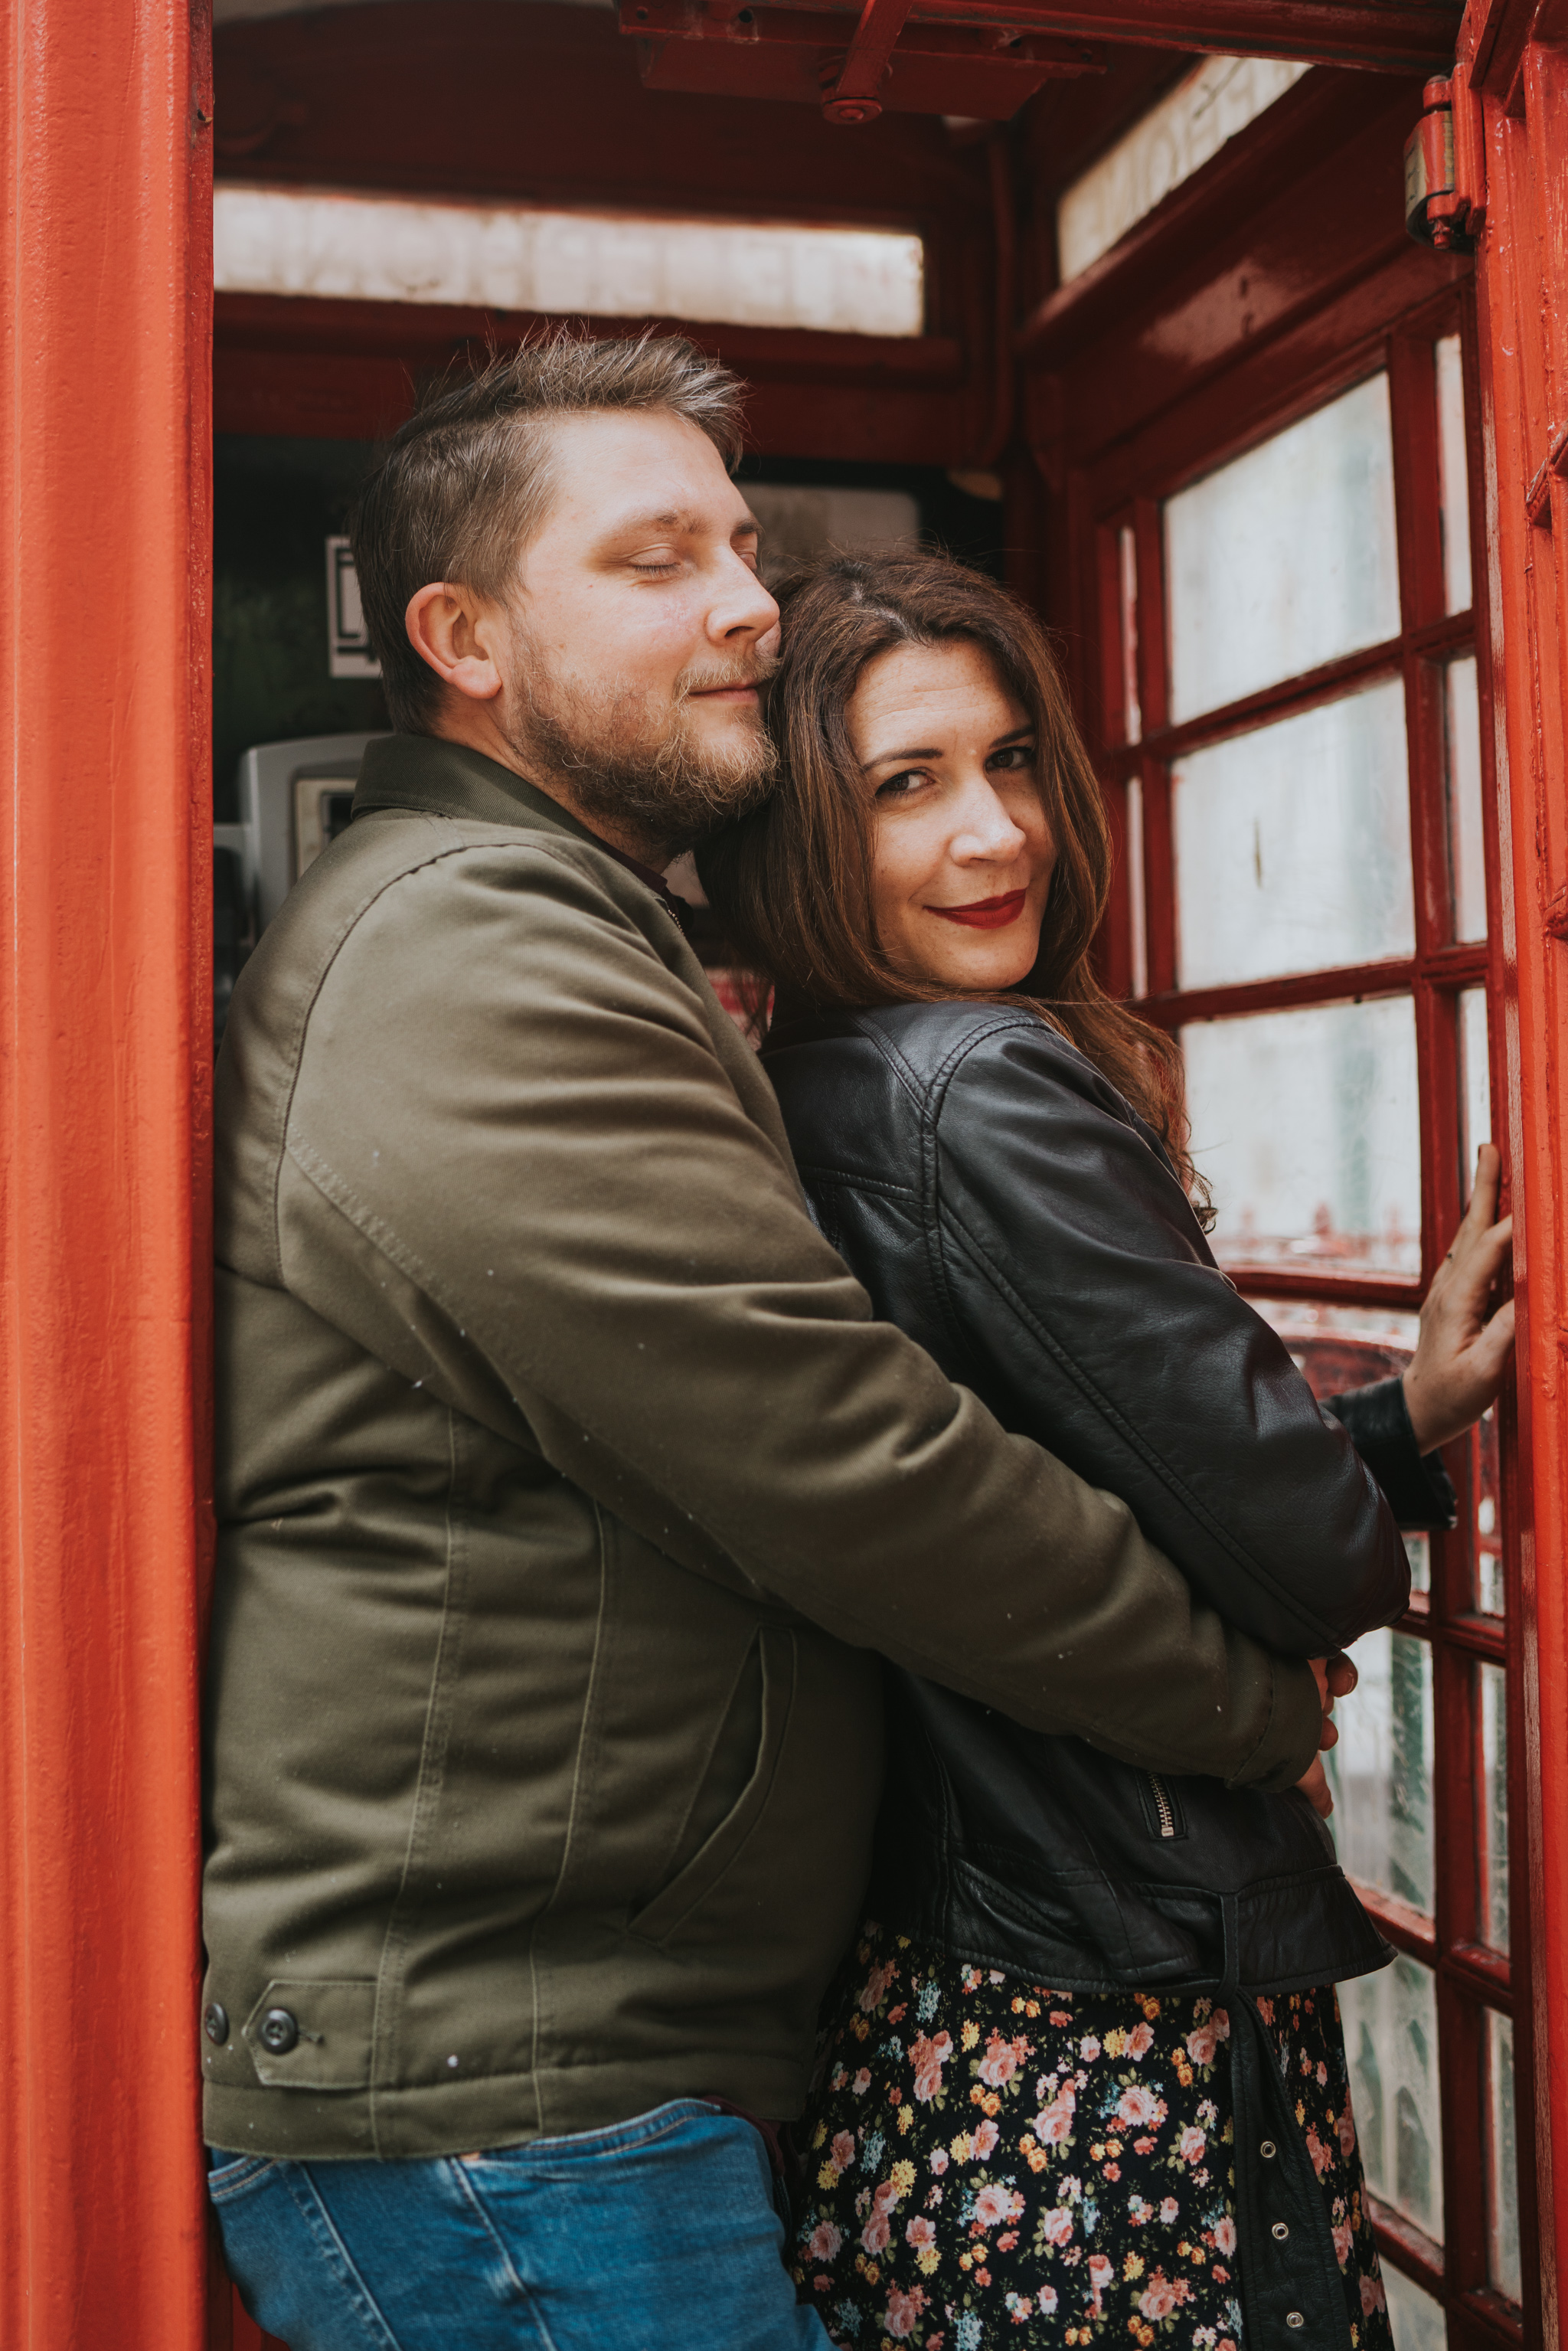 natalie-john-urban-london-engagement-grace-elizabeth-colchester-essex-alternative-wedding-photographer-essex-suffolk-norfolk-devon (65 of 66).jpg